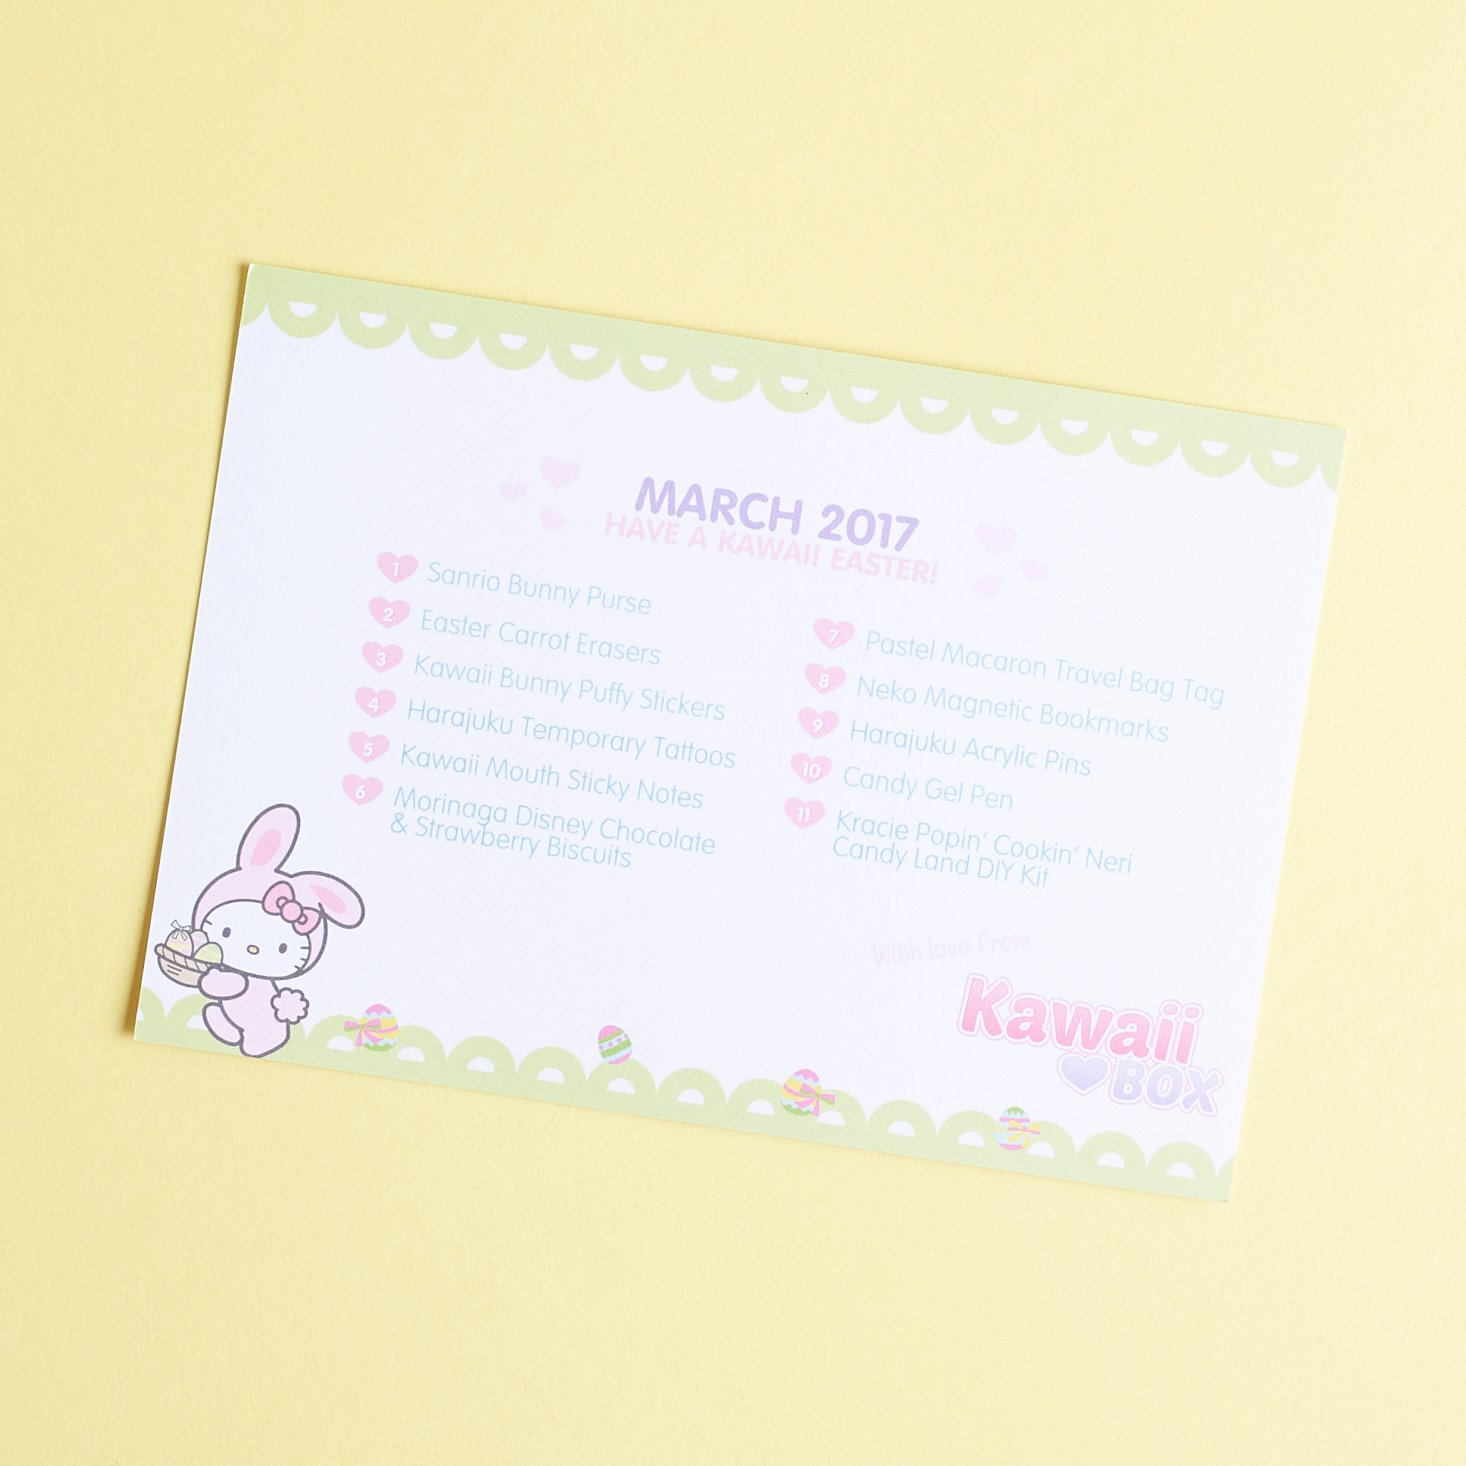 Kawaii-box-april-2017-0009